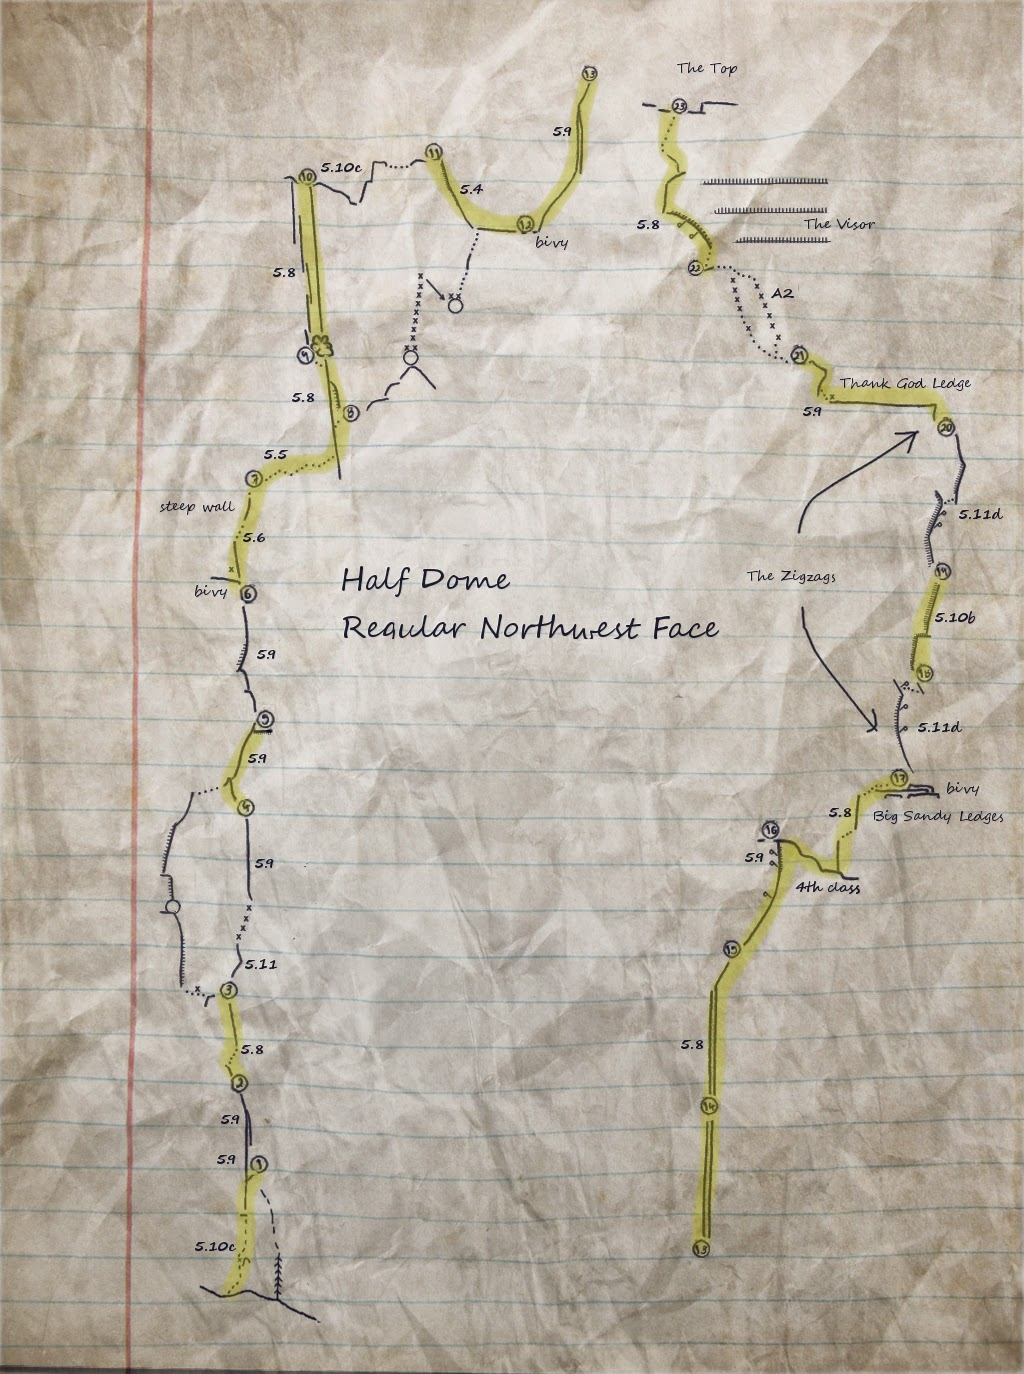 Topo Half Dome Regular Route Climber's Notes